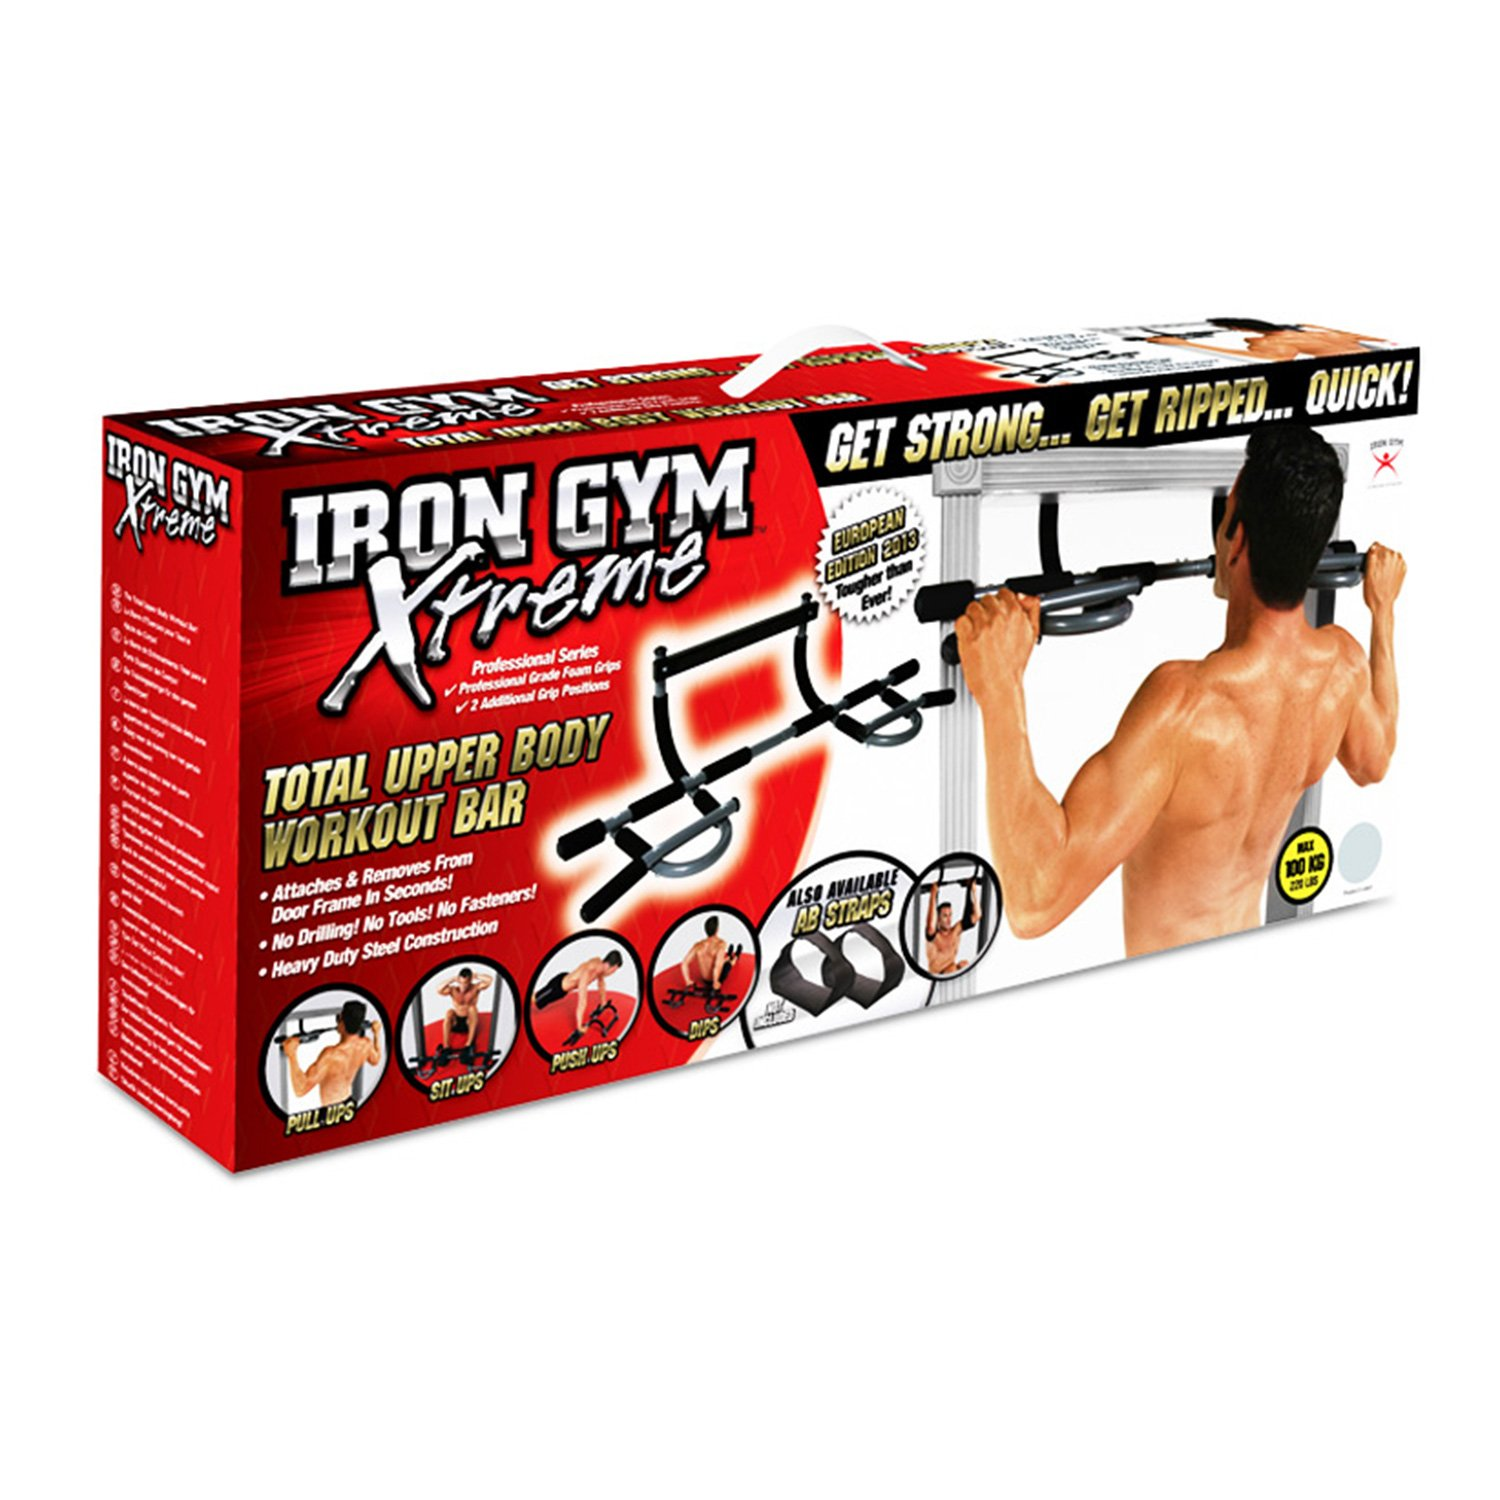 Amazon.com : Iron Gym Total Upper Body Workout Bar - Extreme Edition : Pull  Up Bars : Sports & Outdoors